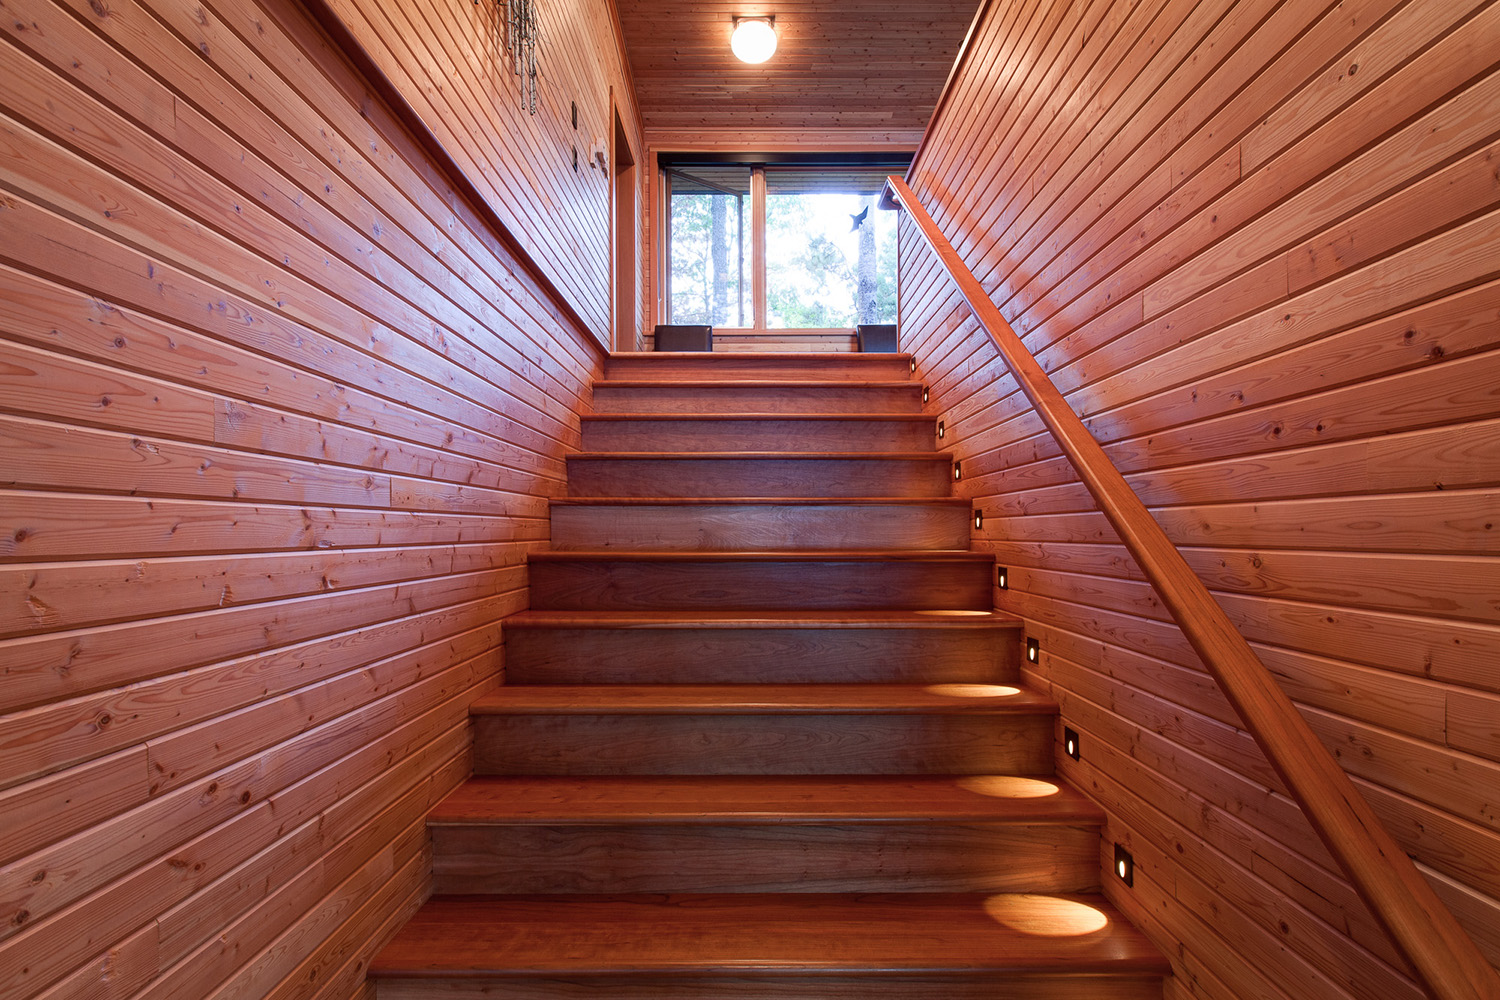 Wood cottage staircase with Step lights and wood handrail. V-channel tongue and groove pine walls